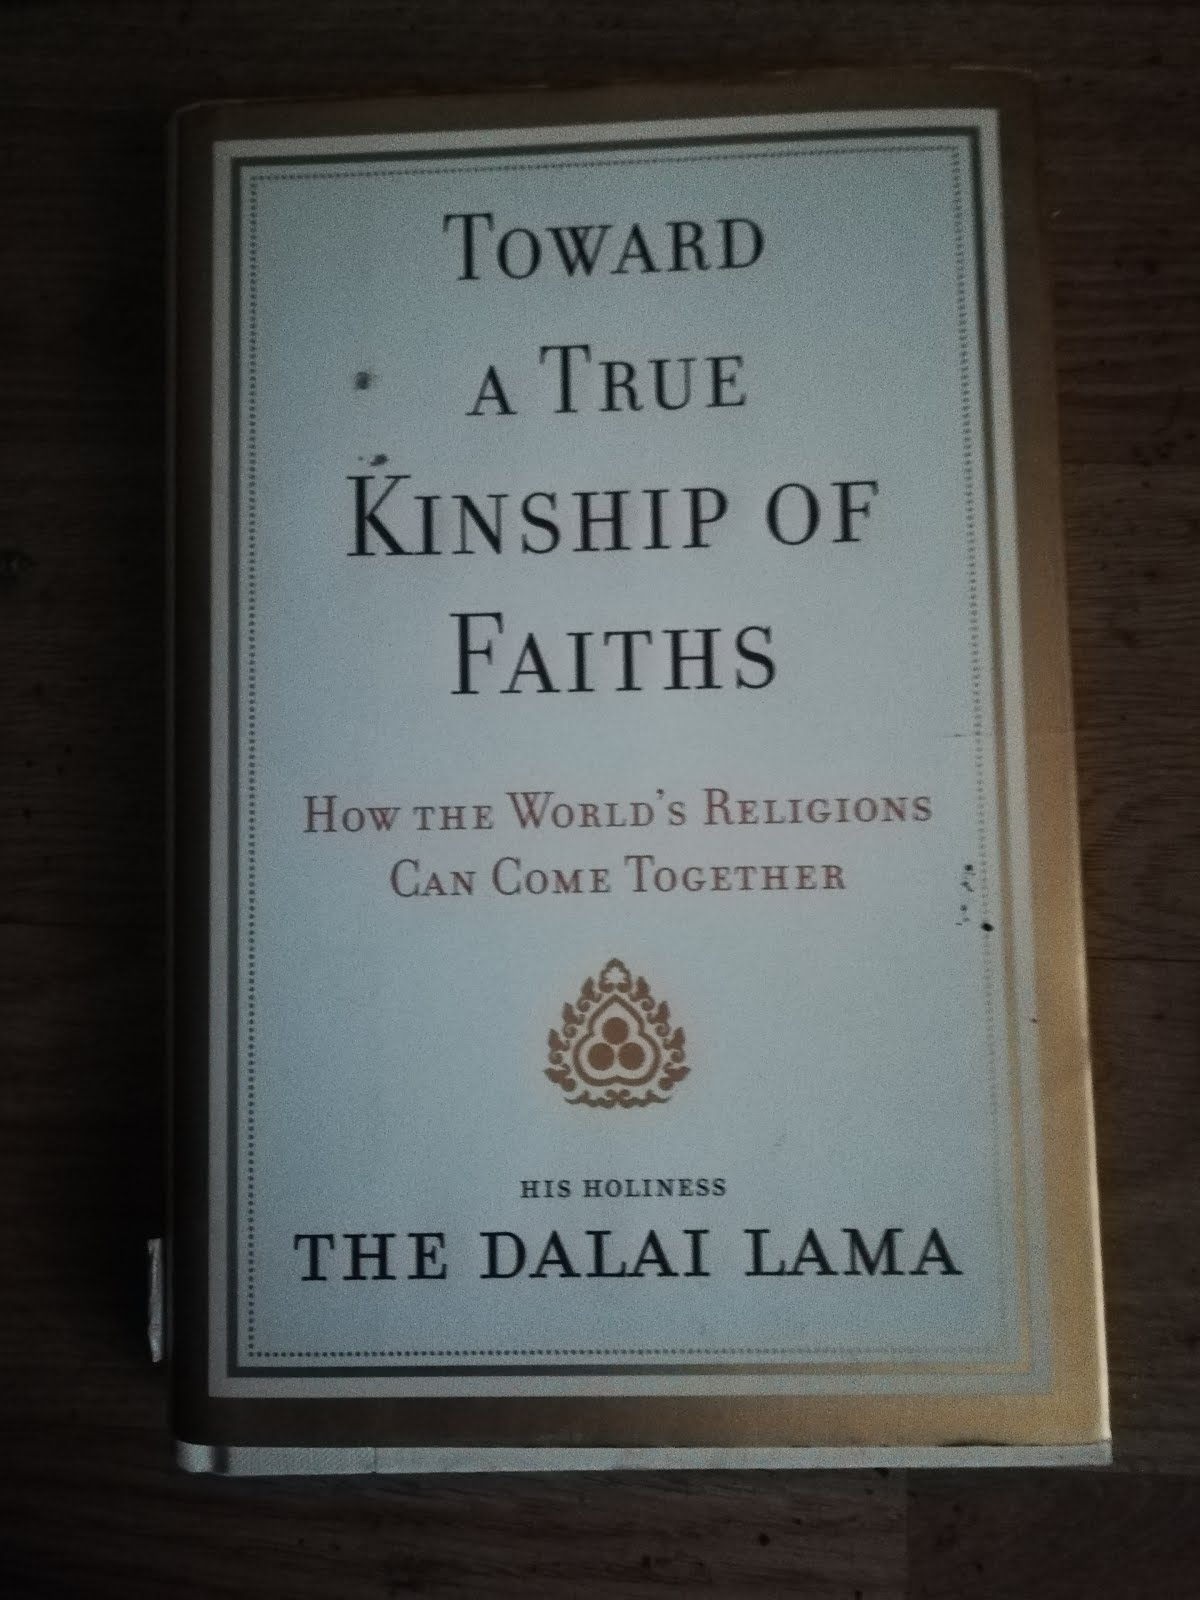 &#39;Toward a True Kinship of Faiths&#39; book by<br>His Holiness the Dalai Lama.